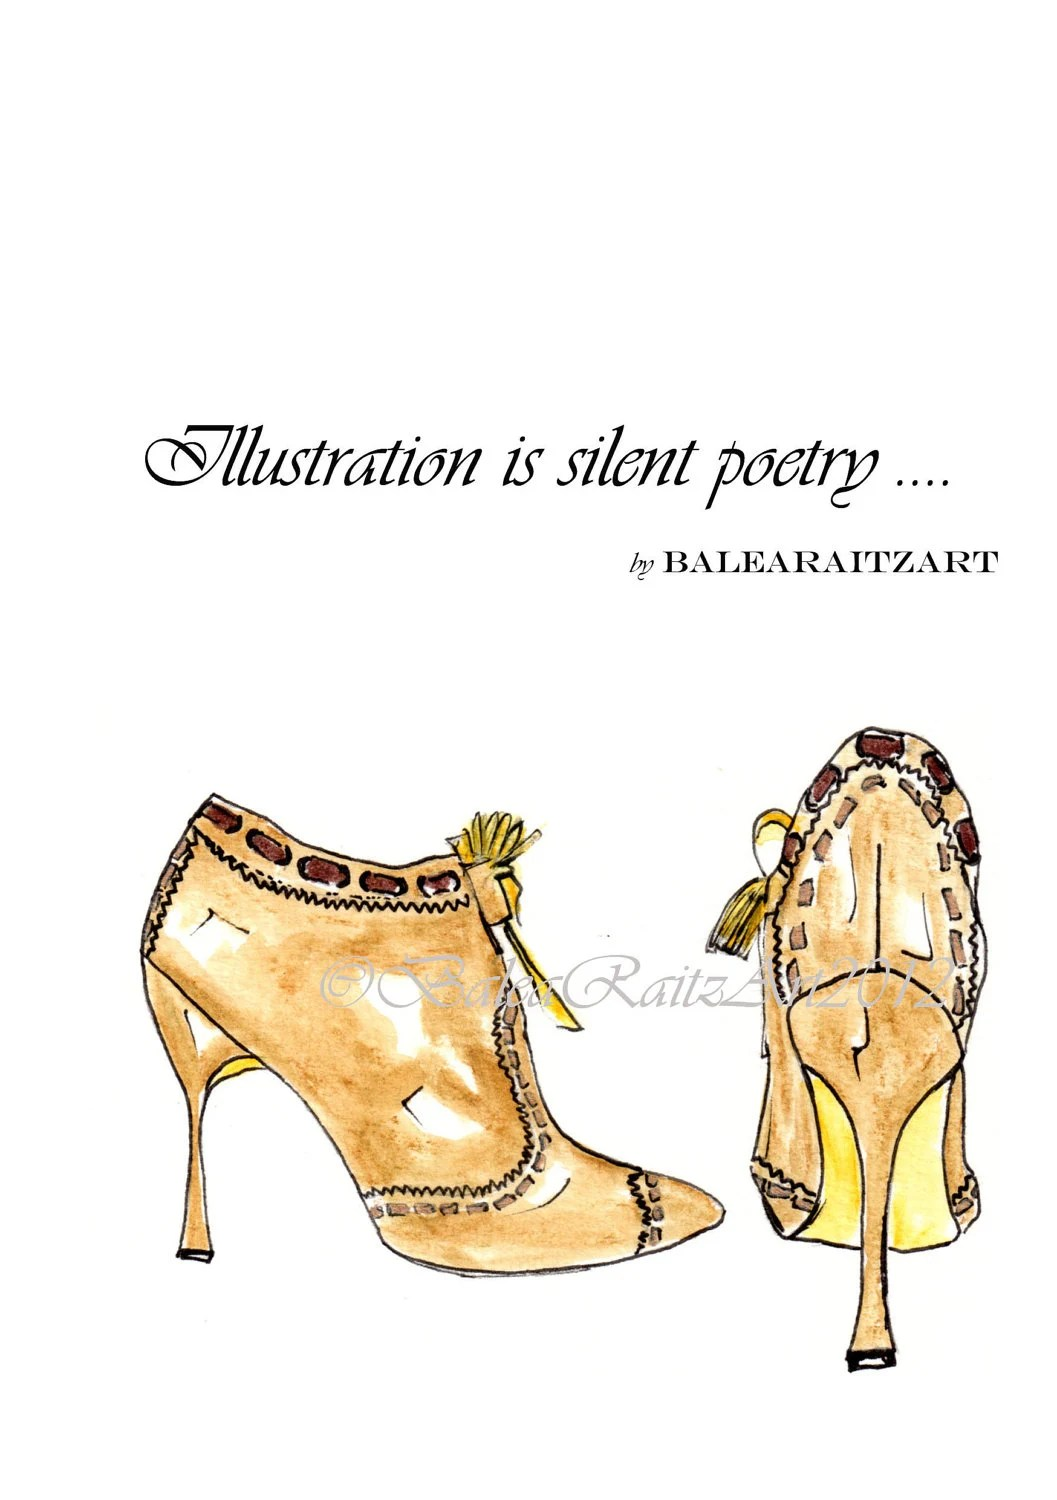 Manolo Blahnik High Heels Print from my original illustration - BaleaRaitzART